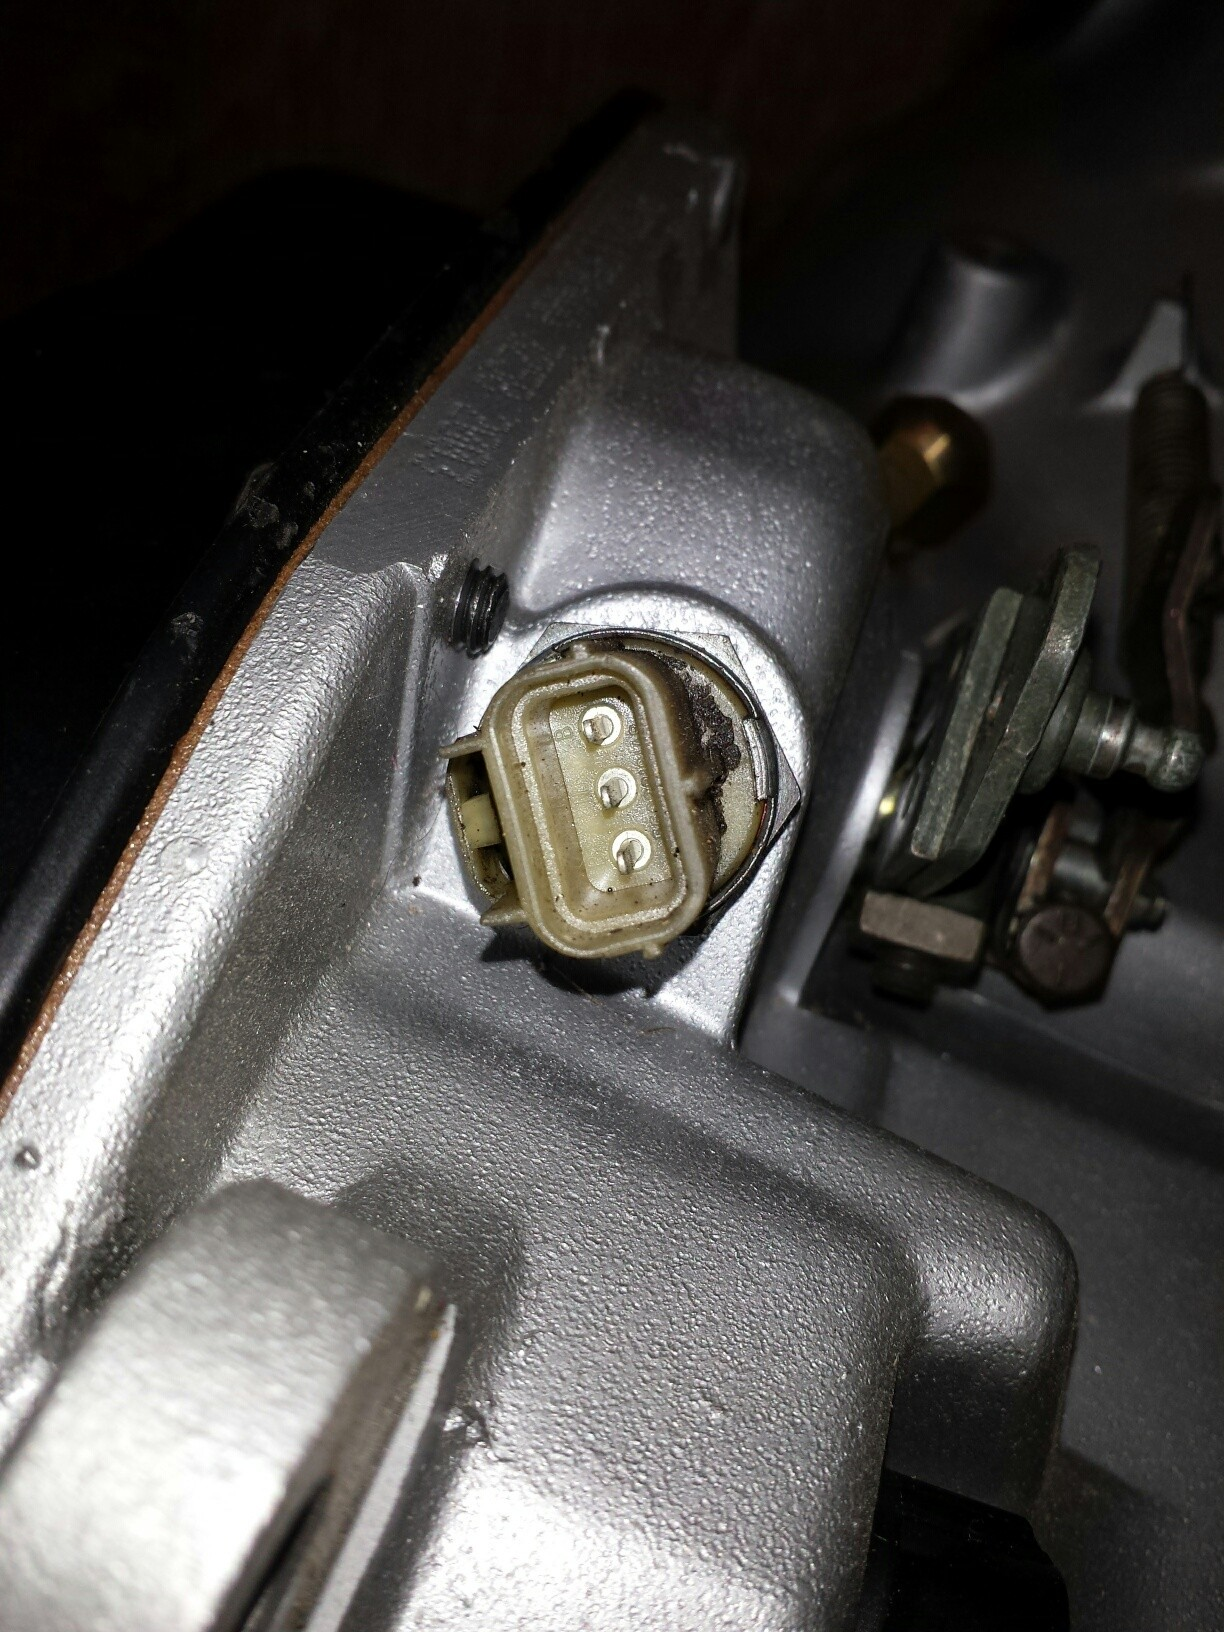 Neutral Safety Switch Clutch Dodge Diesel 4500 Ecm Wiring Diagram Trying To Wire Up My Backup Light And P N On A 545rfe 46rh Swap Is Mixture Of Years Can Anyone Identify What I Believe Be The